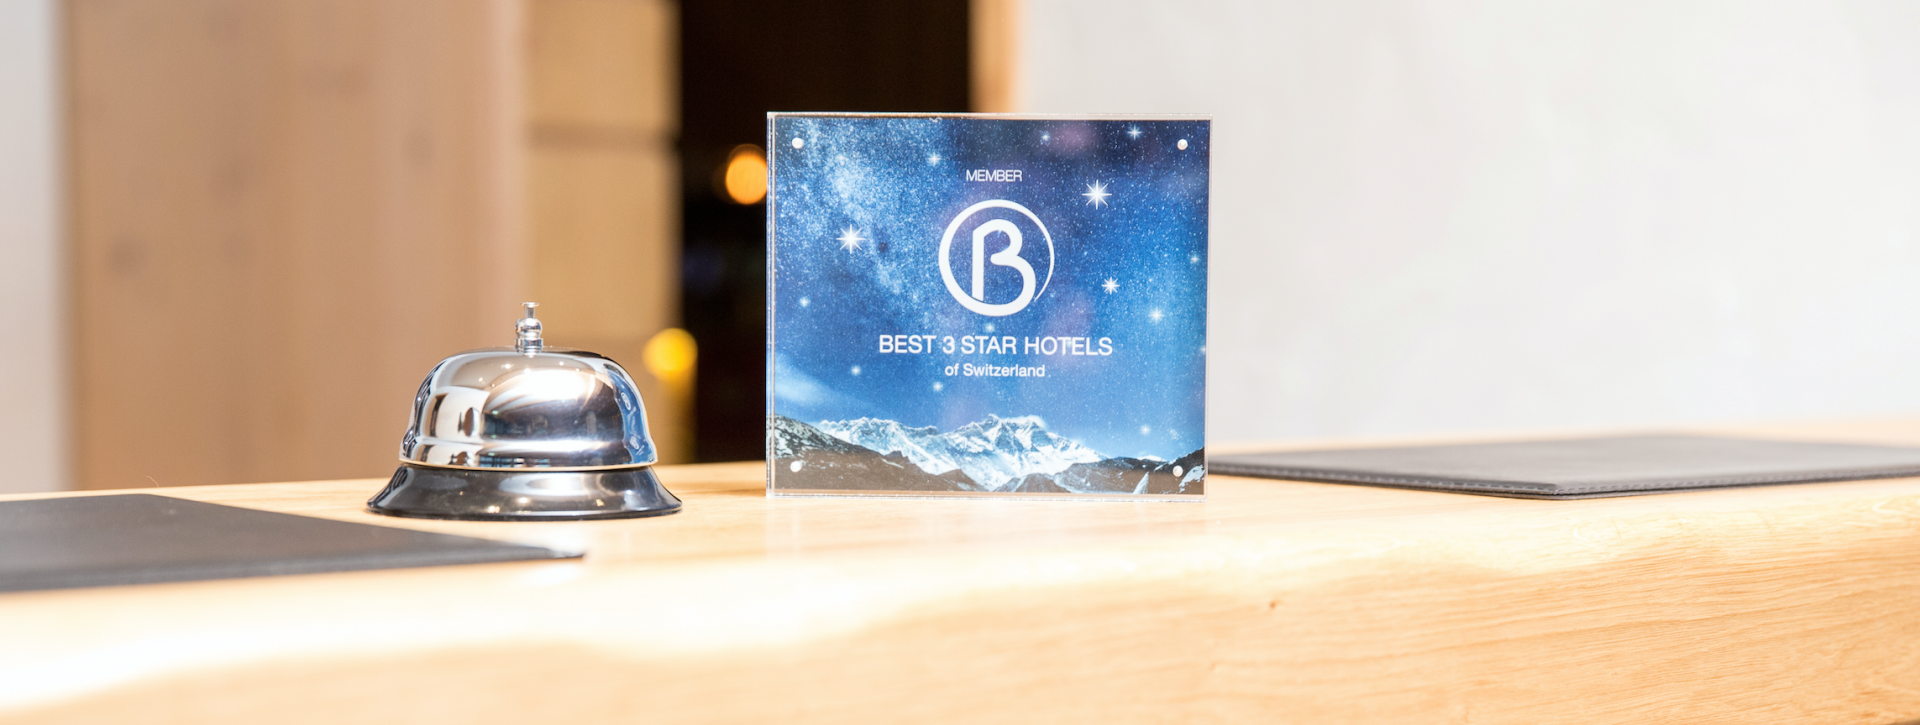 L'hôtel International au Lac Lugano est membre du groupe hôtelier Best-3-Star-Hotels of Switzerland